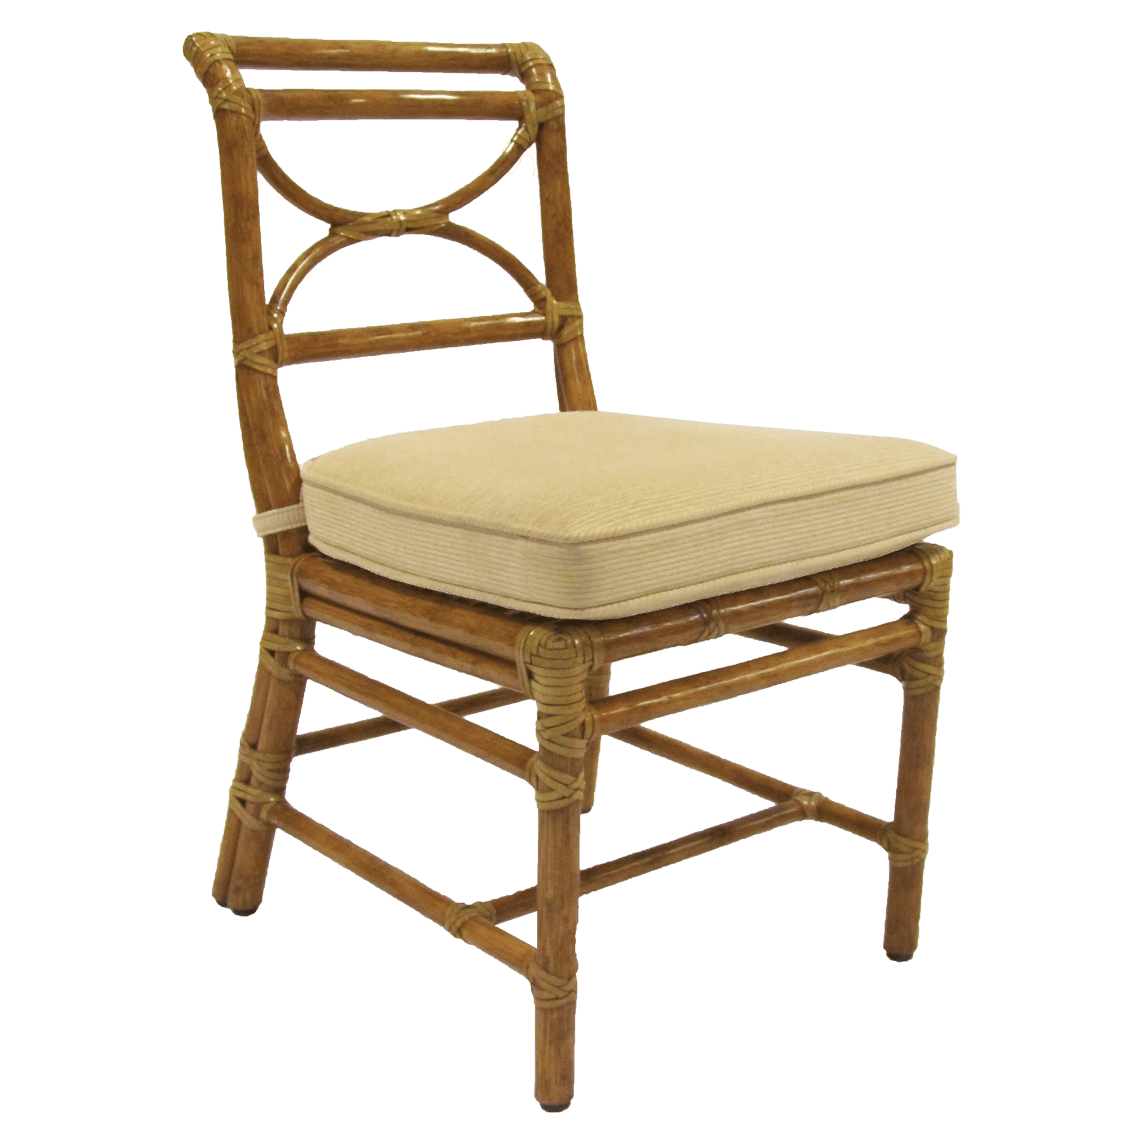 McGuire M34 Regency Rattan Chair